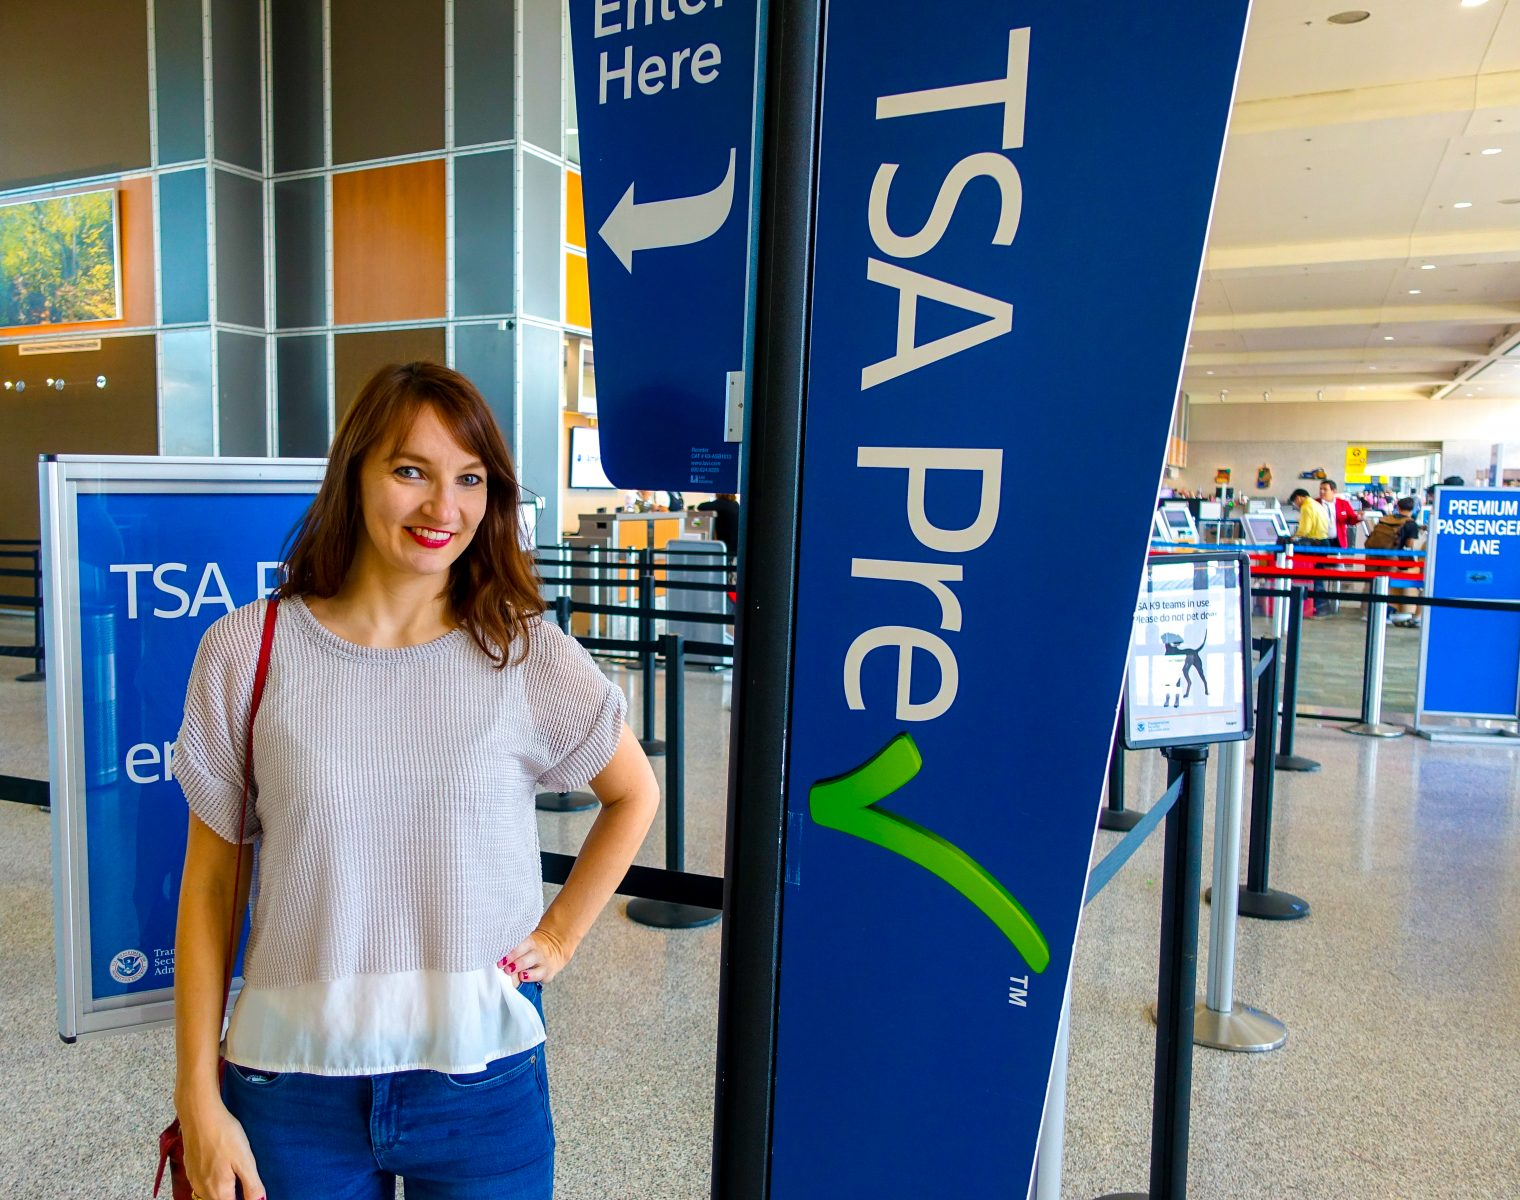 TSA PreCheck Adds Another 3 Airlines to Its List of Participants (I'm Especially Excited for One of Them!)